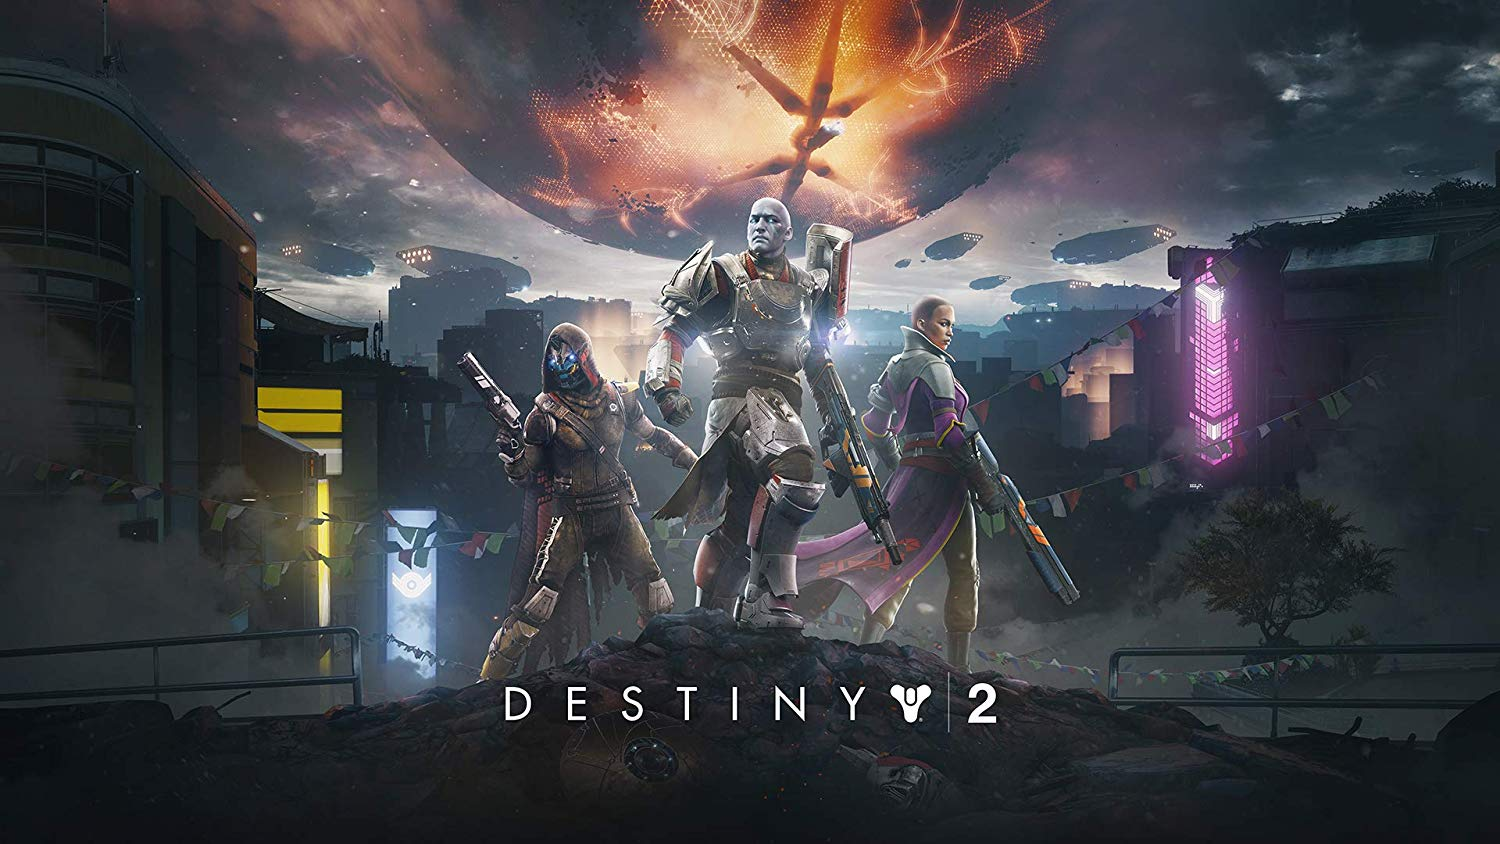 New exploit in Destiny 2 using Lord of Wolves